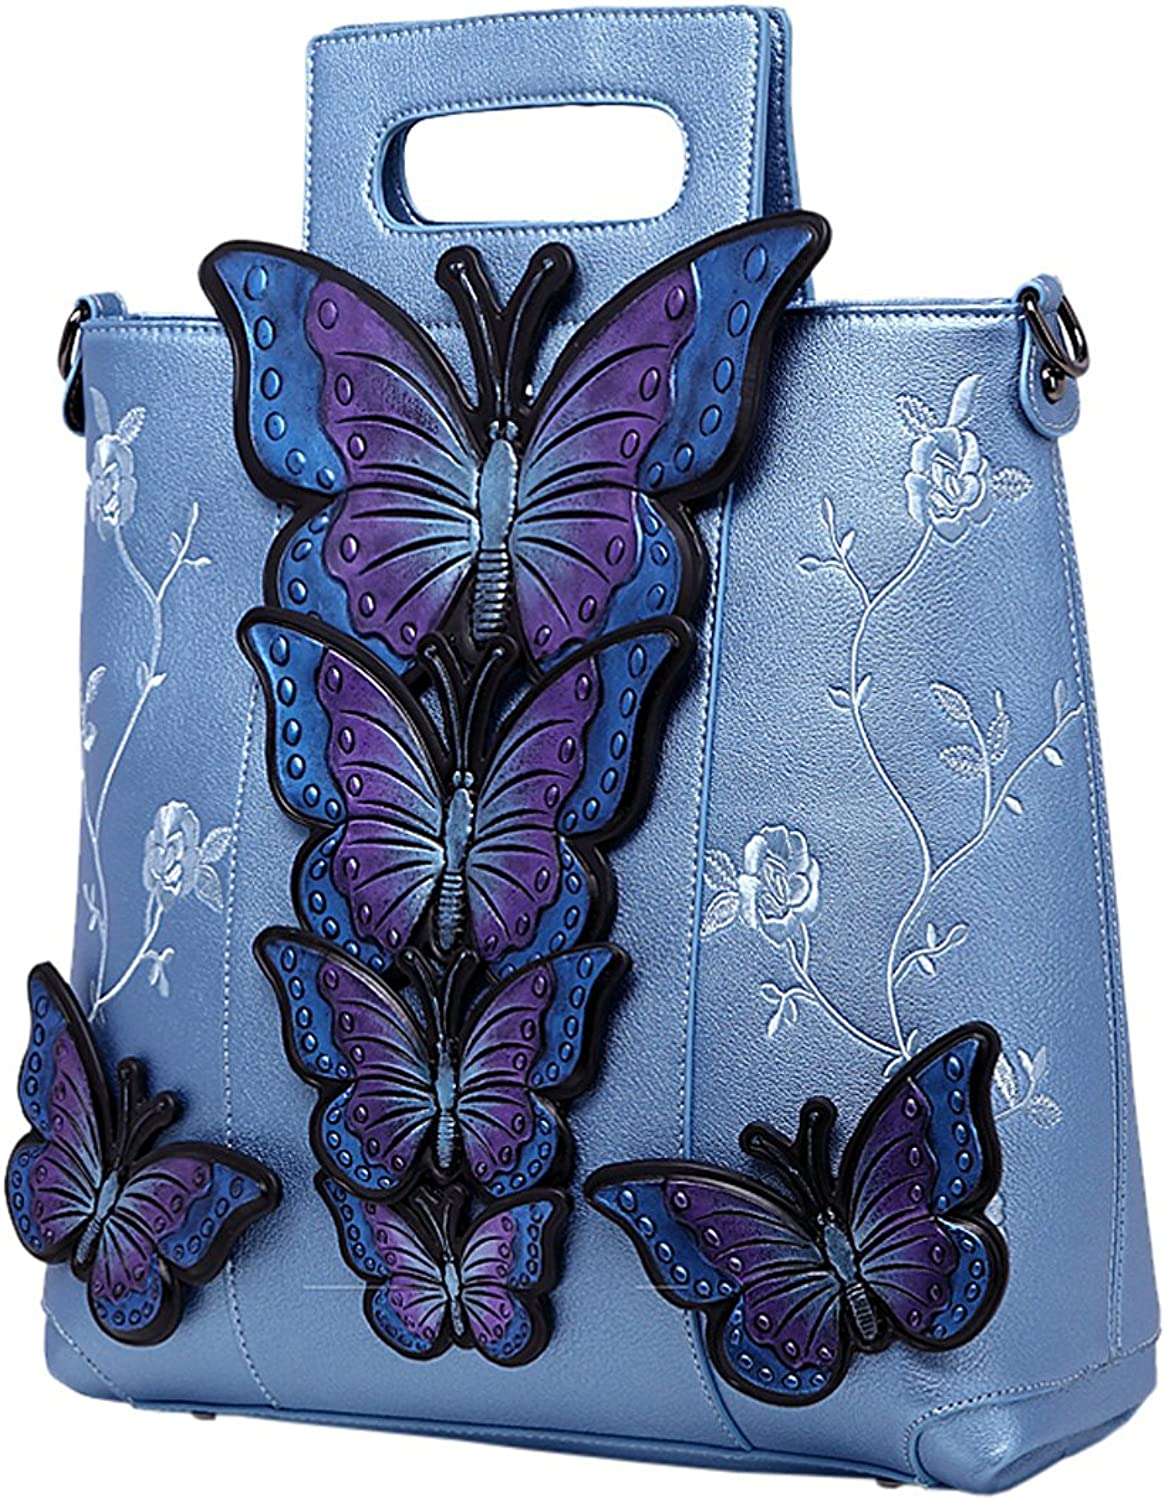 KAXIDY Ladies Hand Made Handbag Embroidered Butterfly PU Leather Messenger Bag Tote Girls Handbags